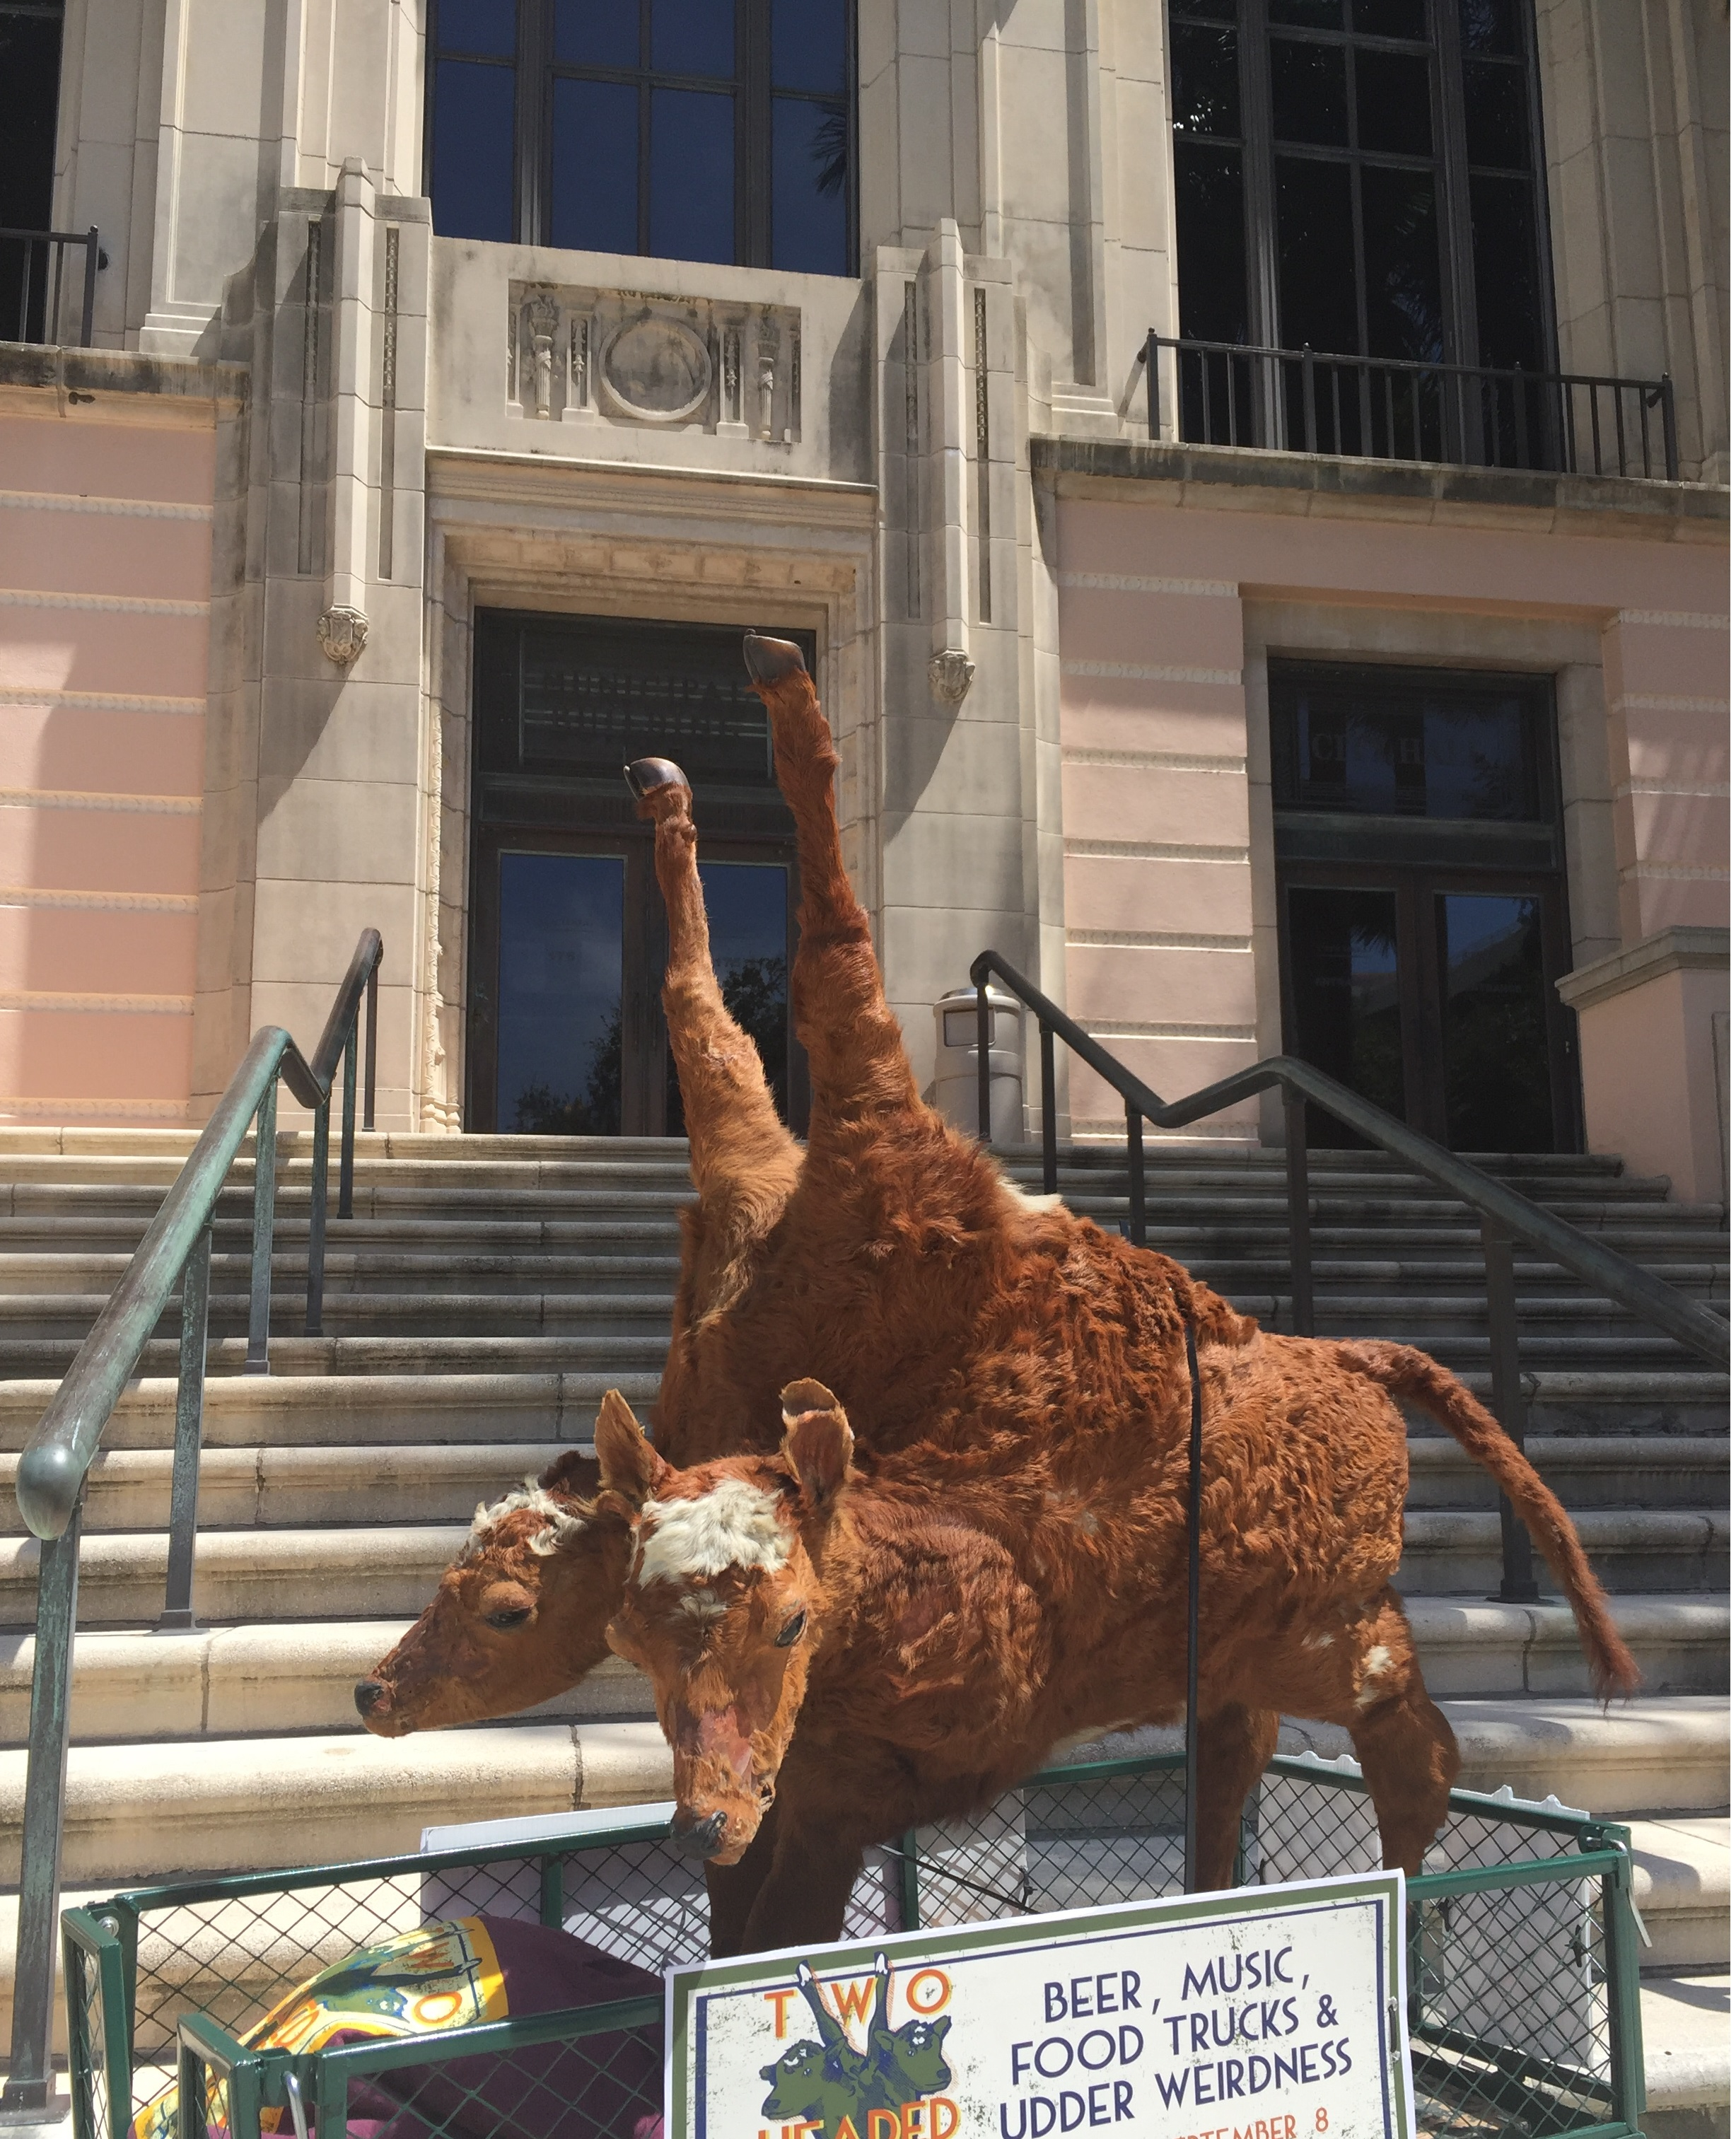 The two-headed calf makes a stop at City Hall. Photo courtesy of the St. Petersburg Museum of History.